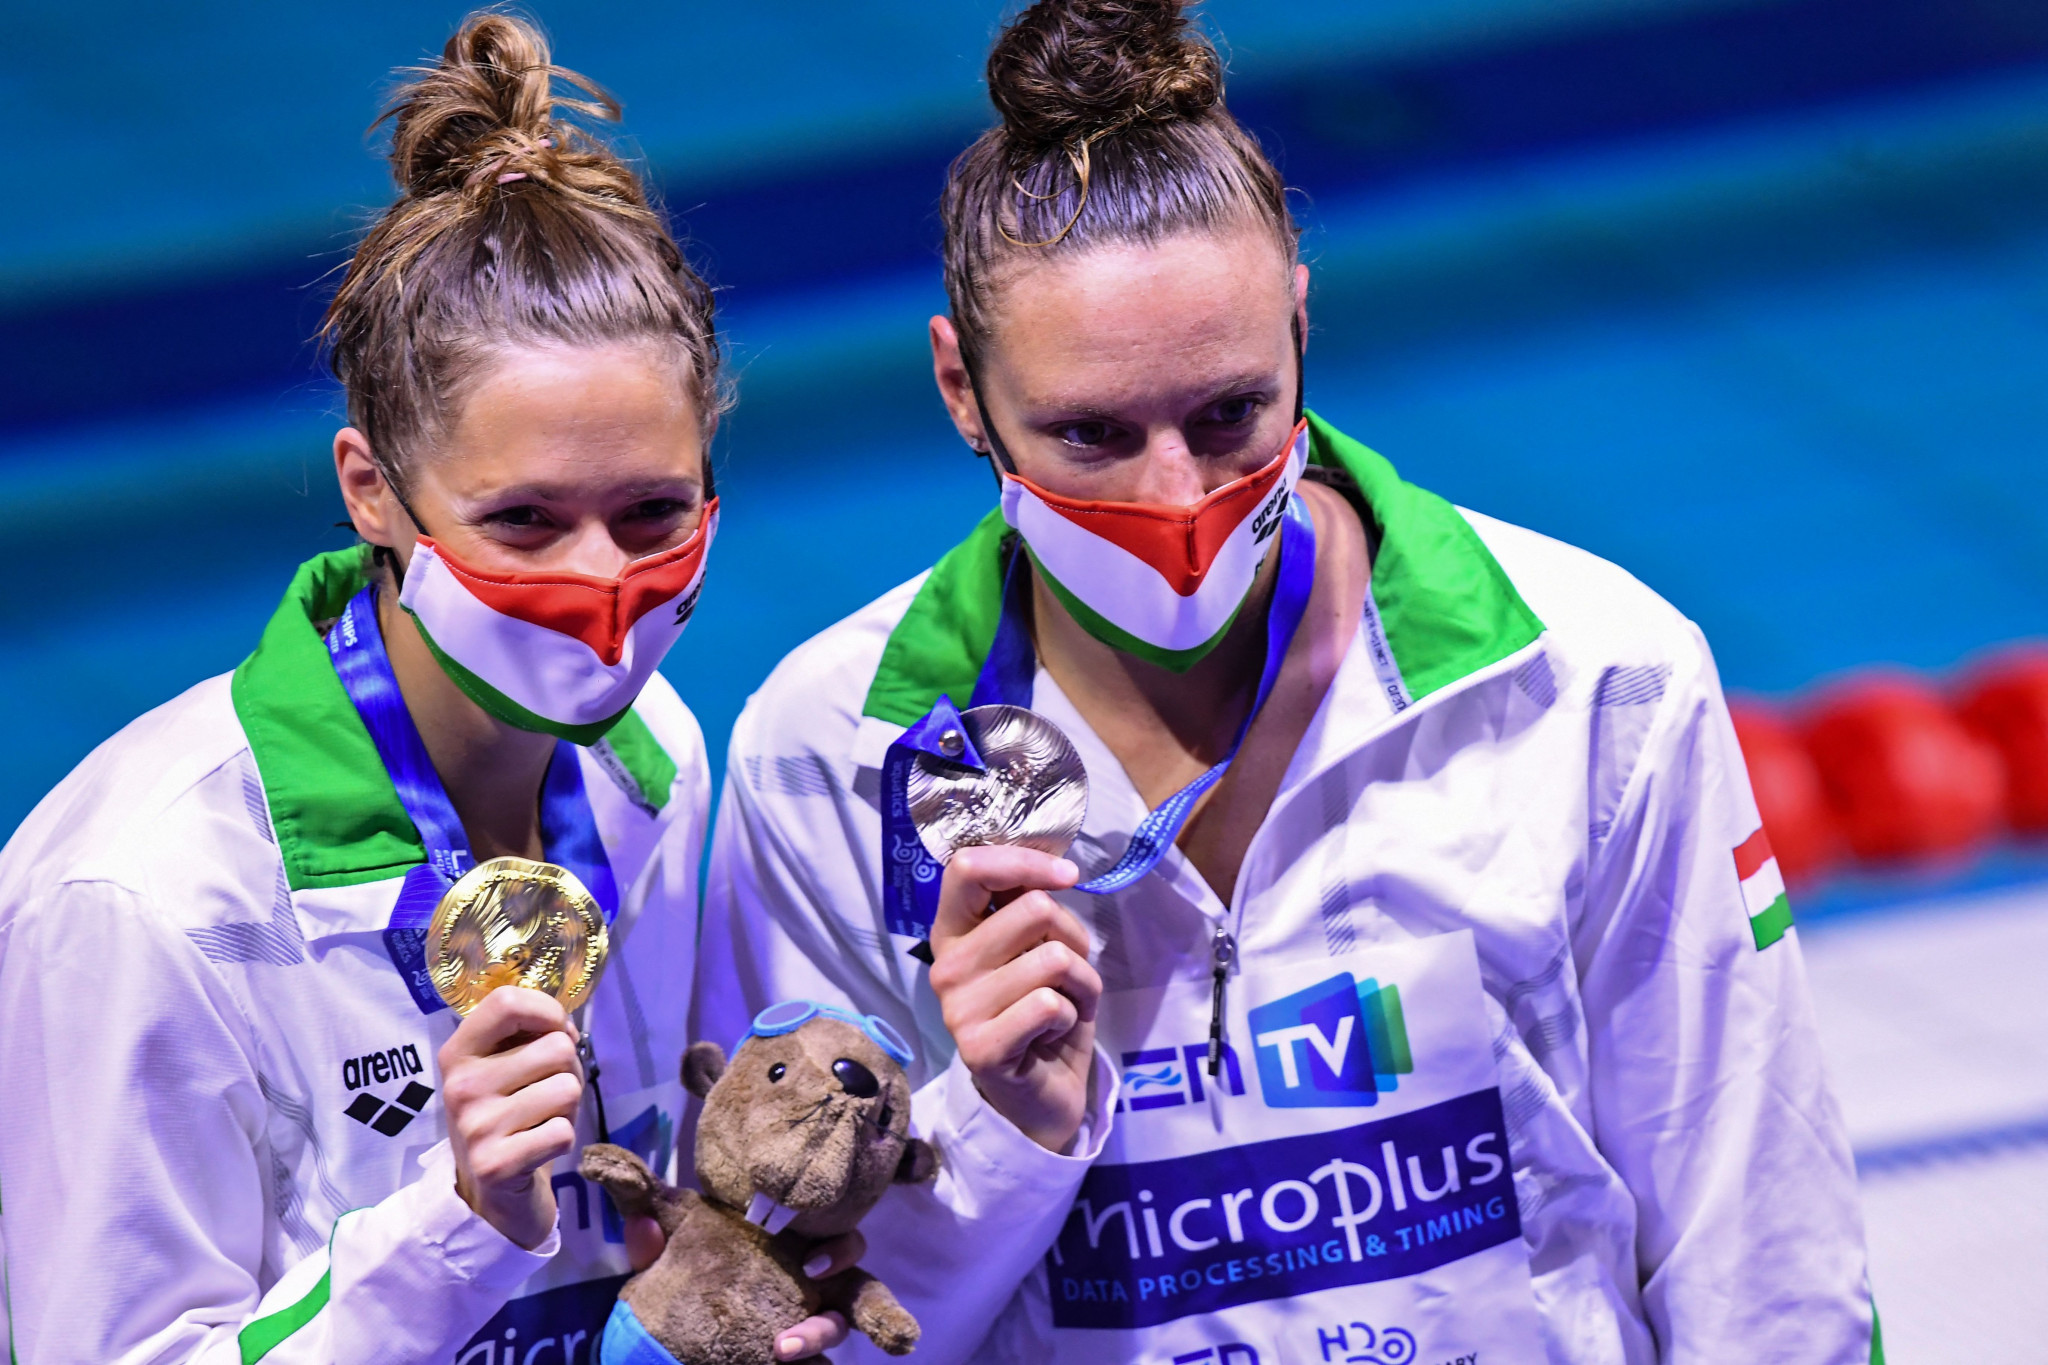 Boglarka Kapas, left, and Katinka Hosszu, right, won gold and silver in the women's 200 metres butterfly ©Getty Images